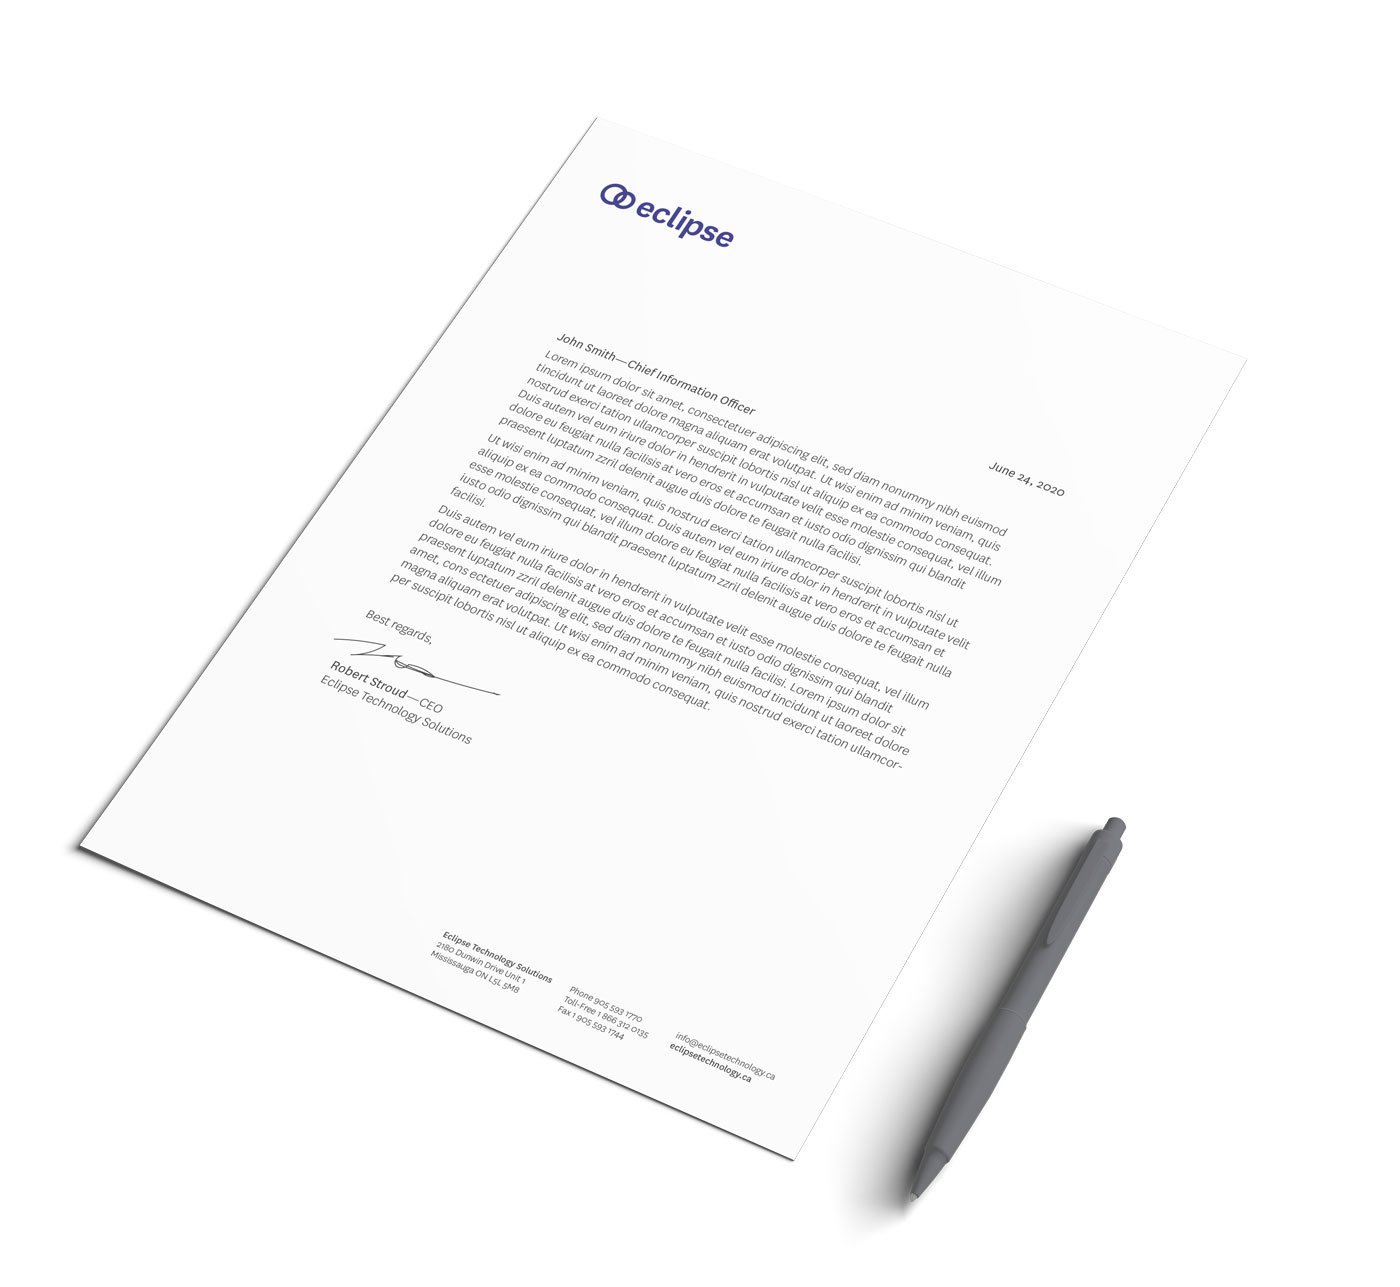 Technology solutions company stationery design letterhead